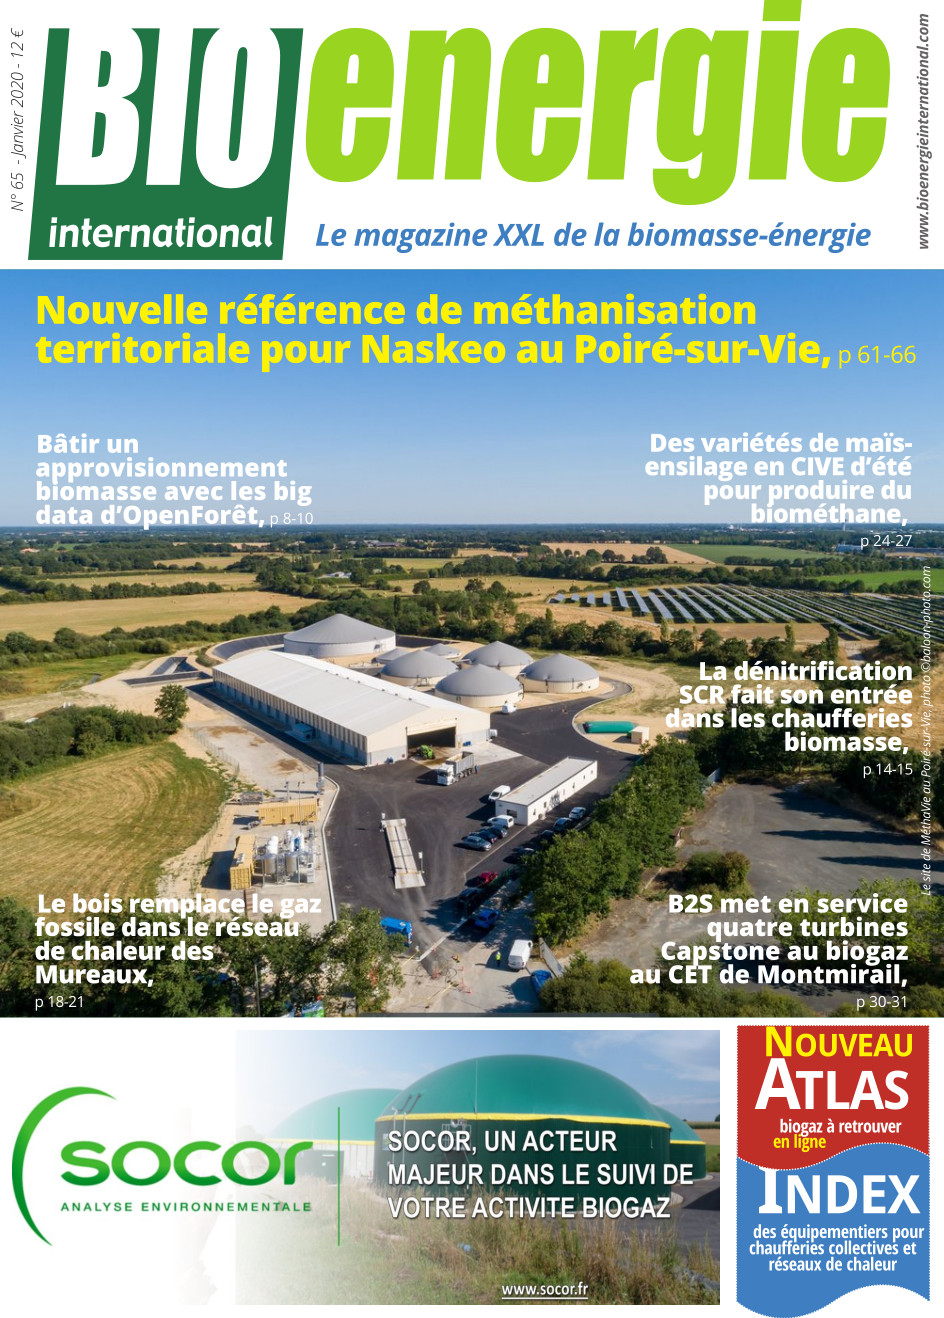 Bioénergie International n°65 – janvier 2020